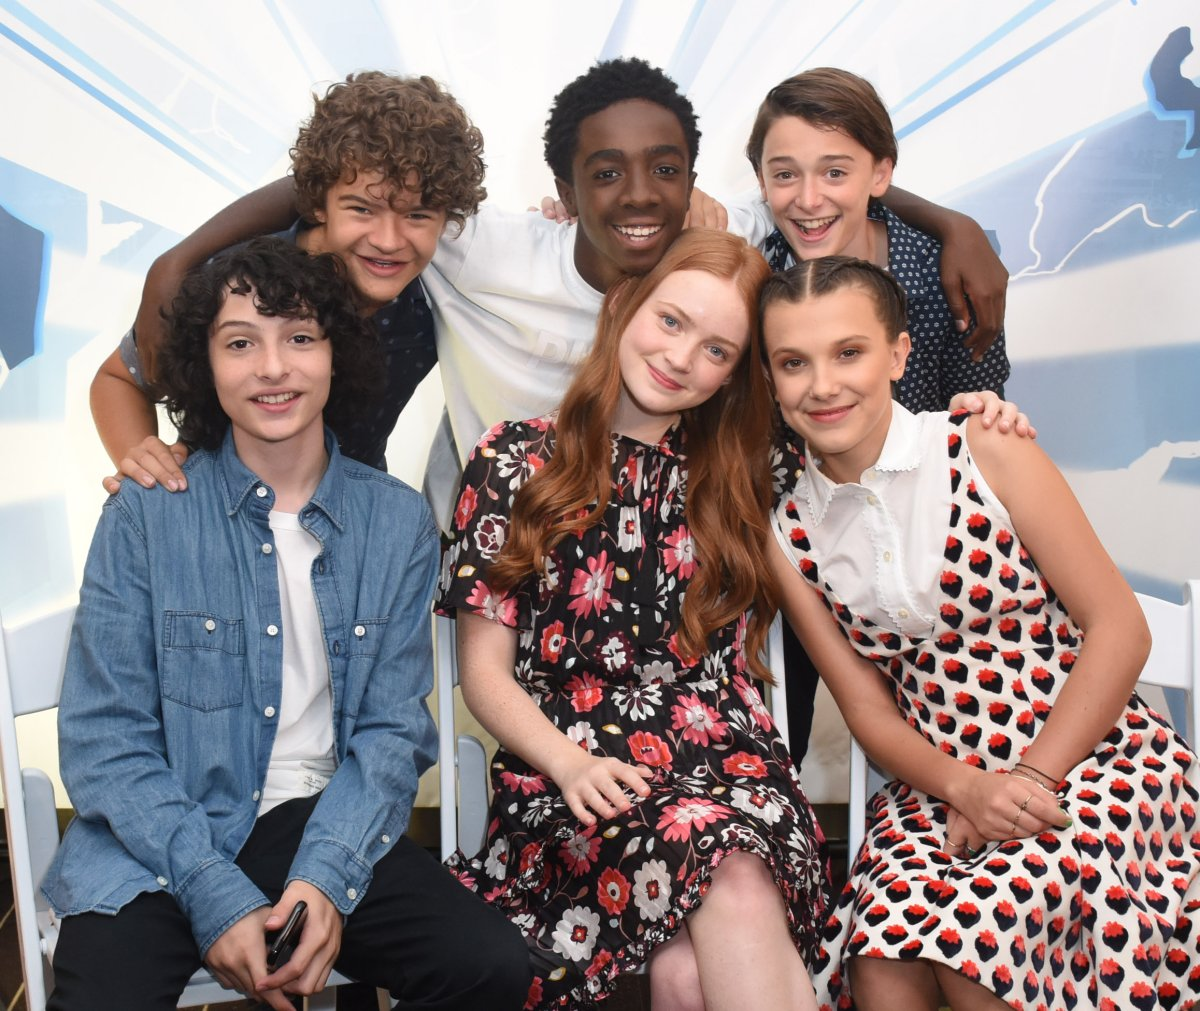 Gaten Matarazzo, Caleb McLaughlin, Noah Schnapp, Finn Wolfhard, Sadie Sink and Millie Bobby Brown attend SiriusXM's Entertainment Weekly Radio Channel Broadcasts From Comic Con 2017 at Hard Rock Hotel San Diego on July 22, 2017 in San Diego, California.